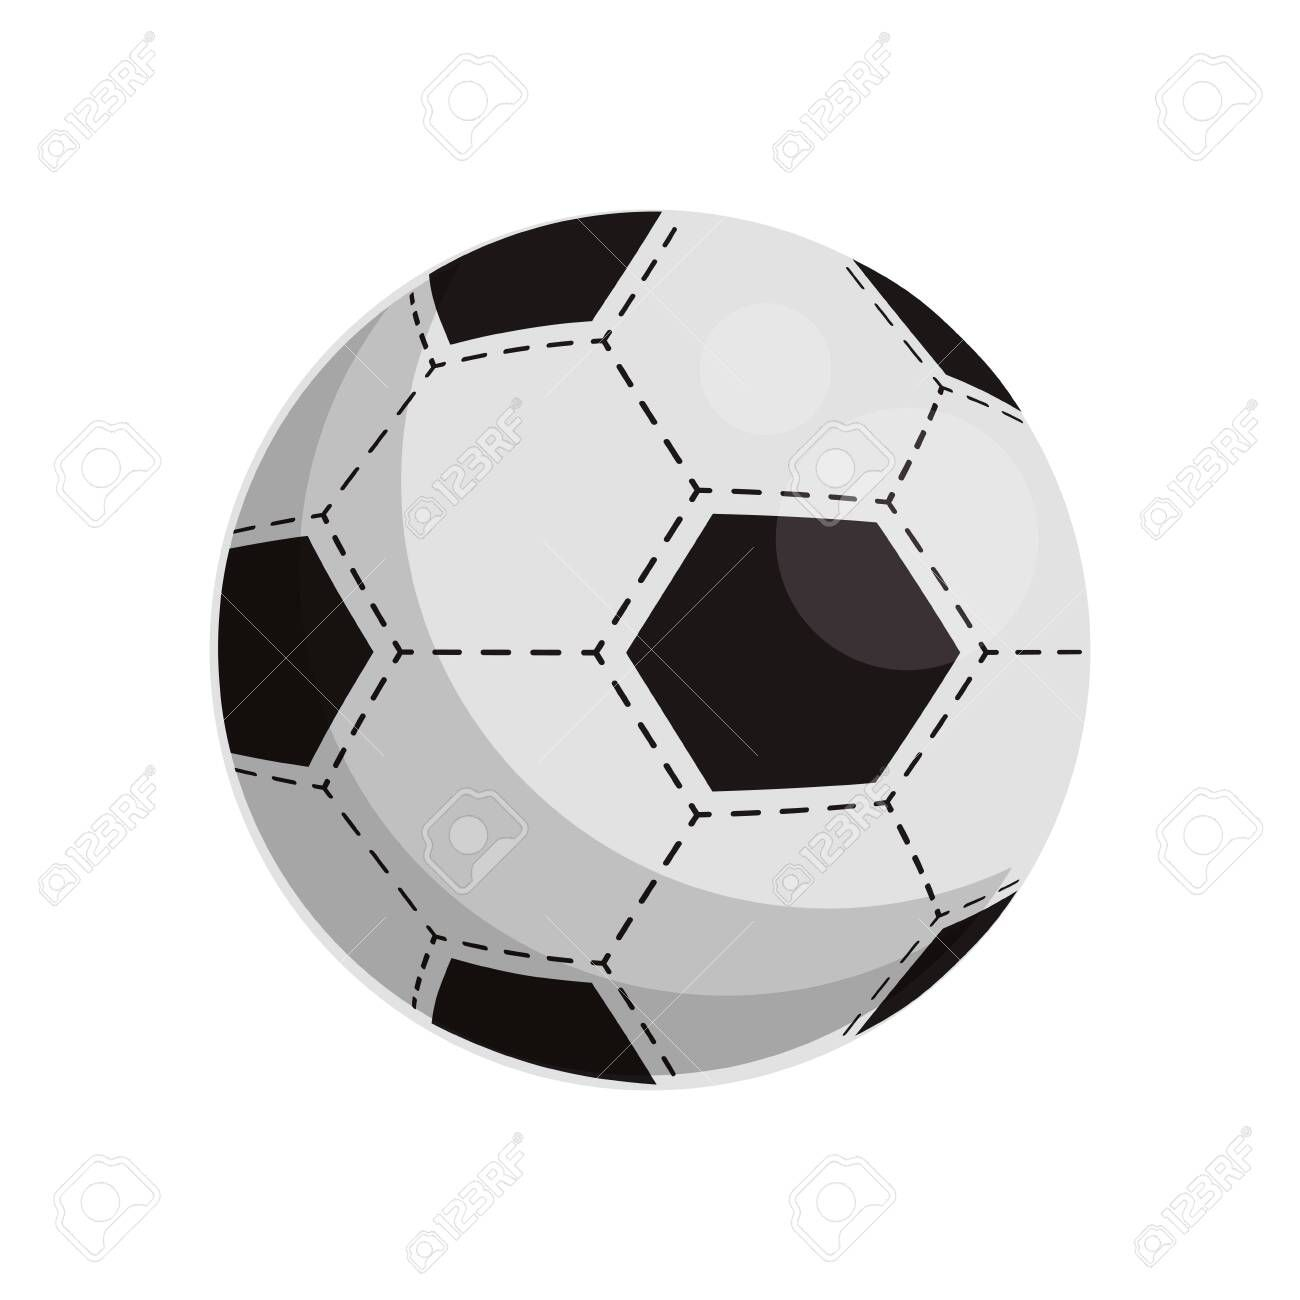 Soccer Ball Icon Over White Background Vector Illustration Aff Icon Ball Soccer White Illustration Natural Logo Soccer Ball White Background